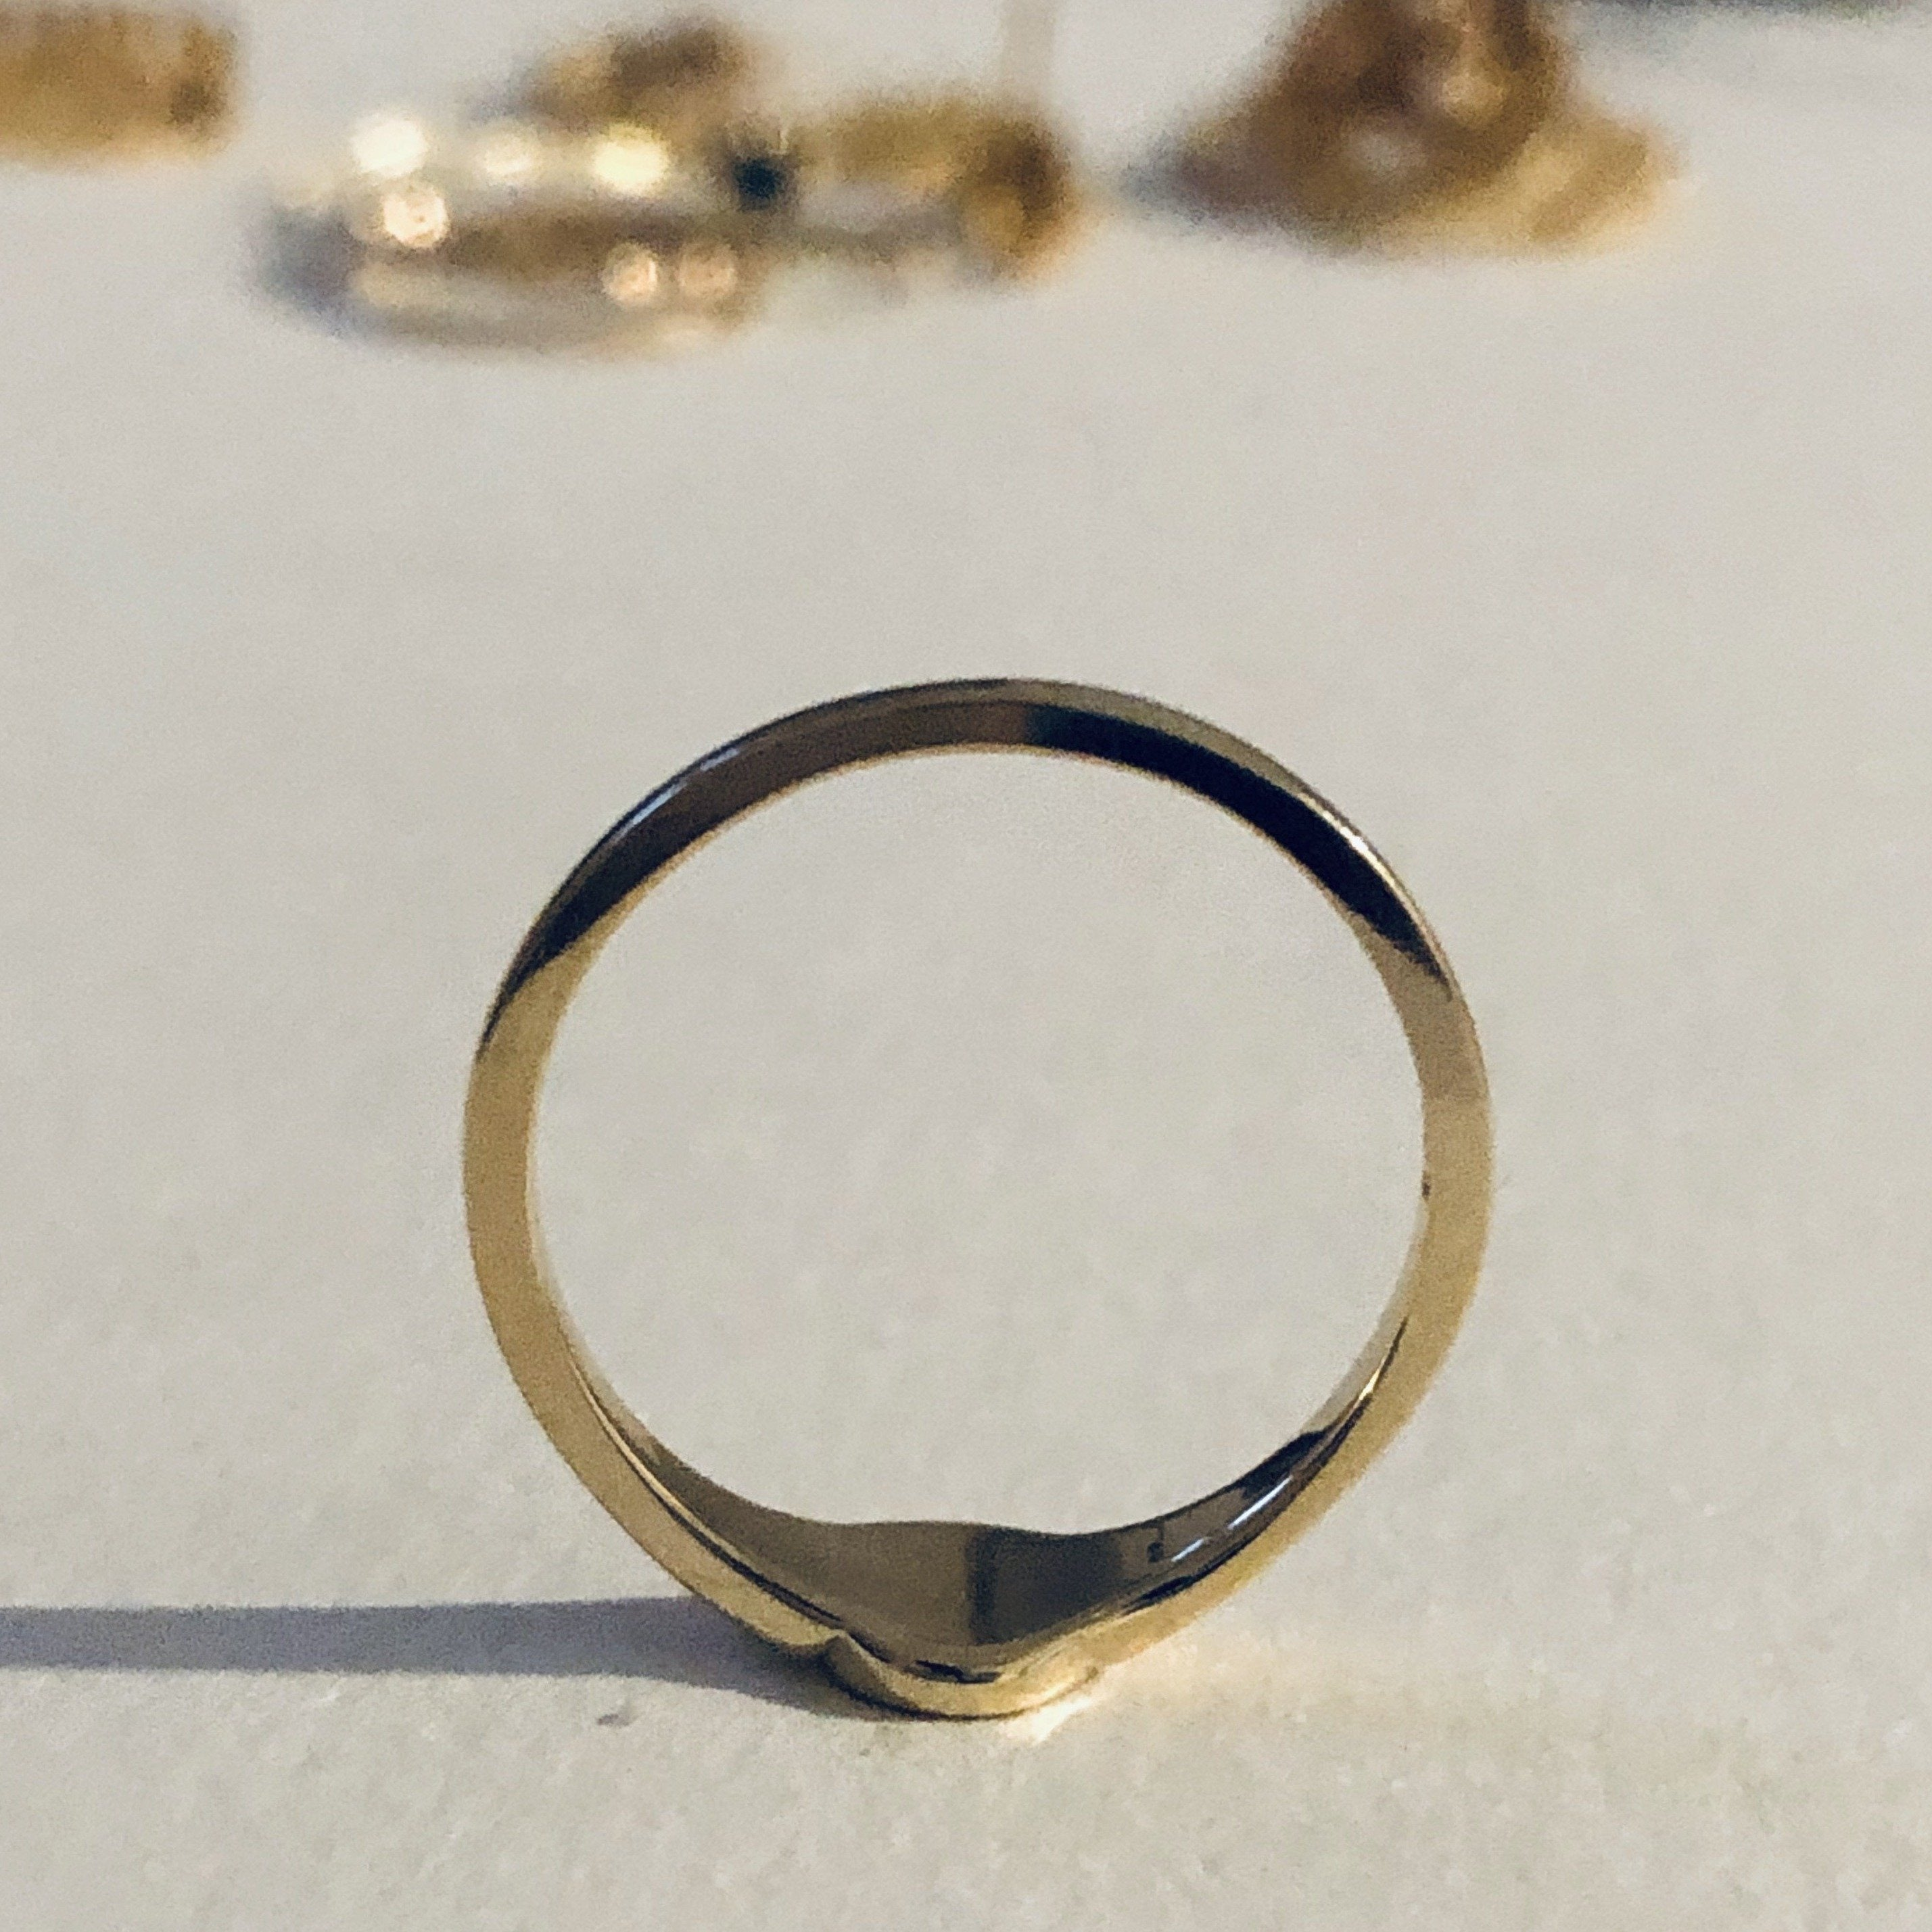 Grace Petite Signet Ring in Gold - IRIS 1956